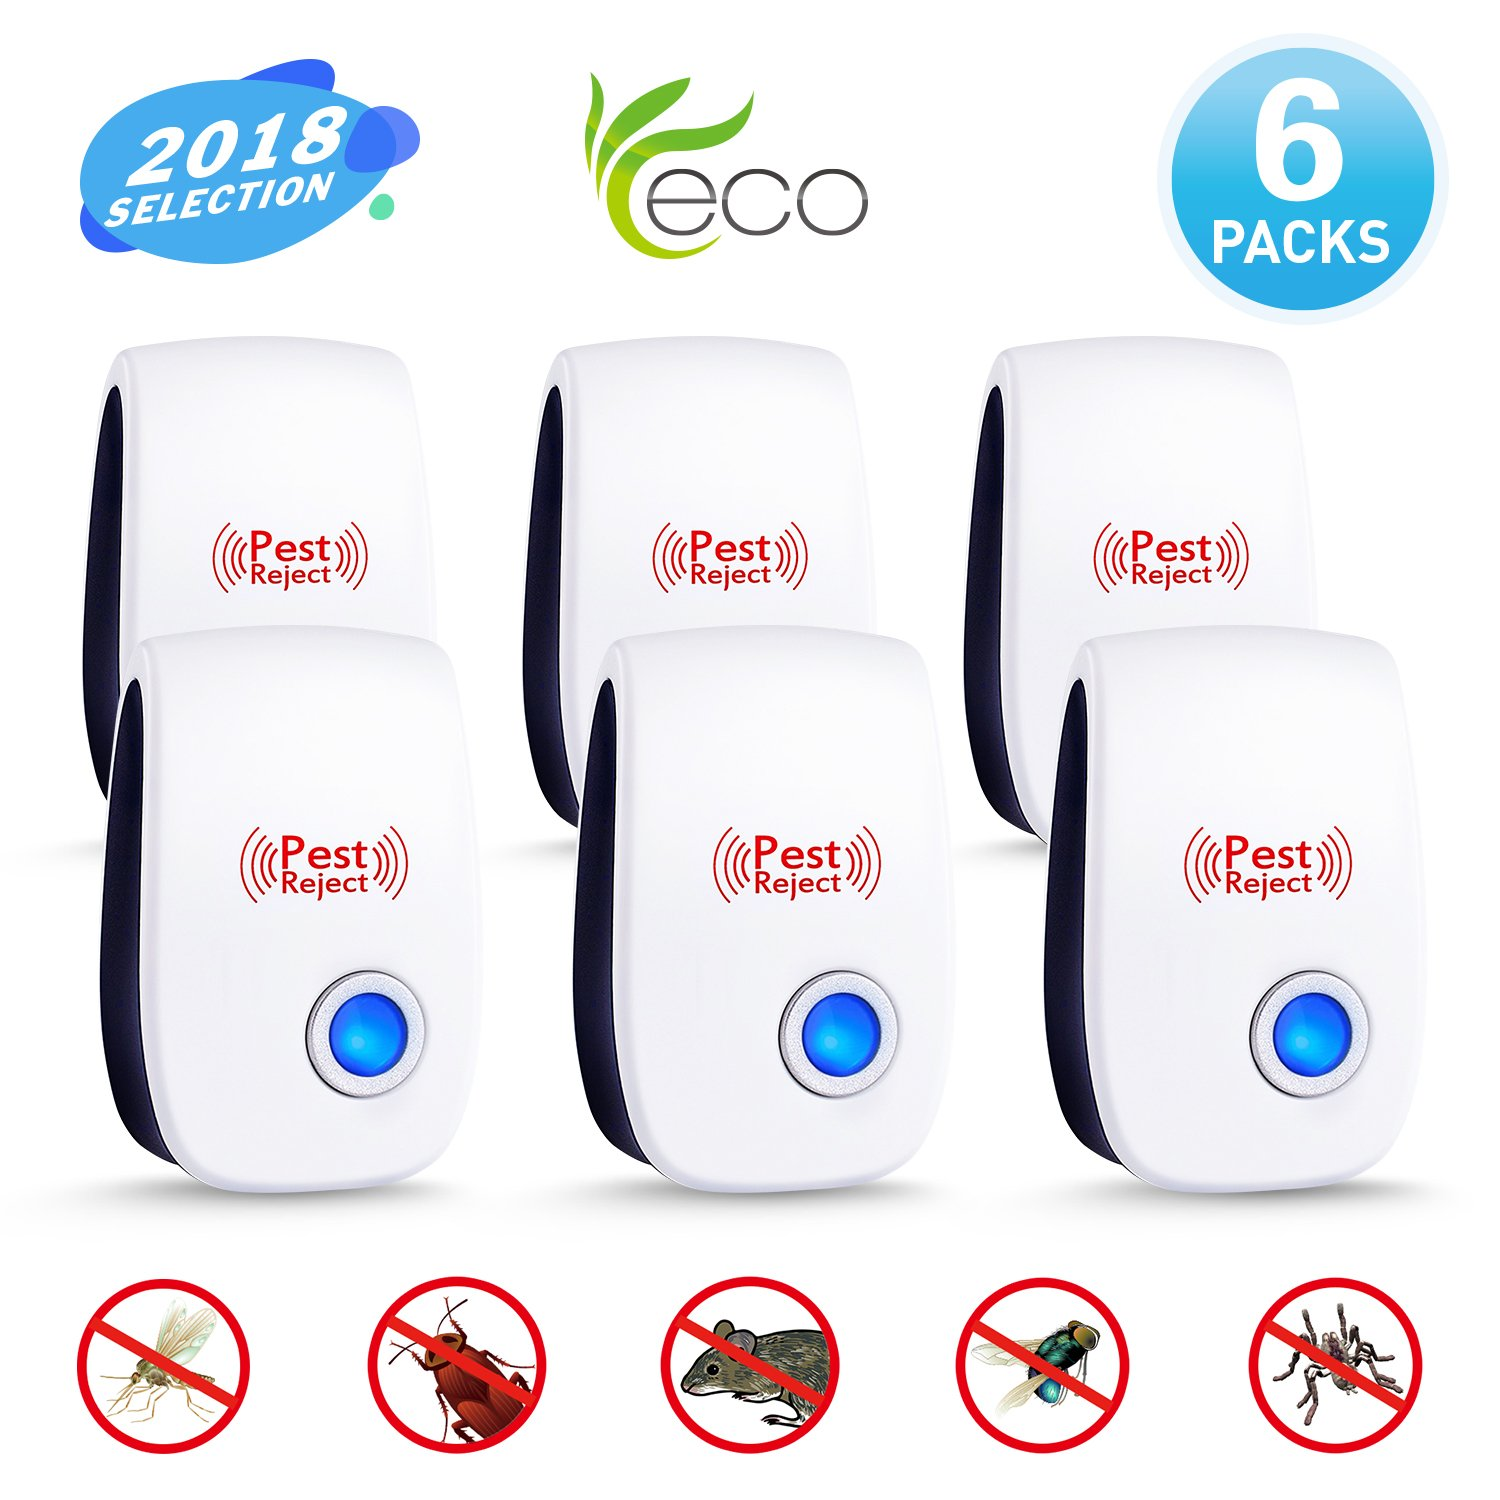 Ultrasonic Pest Repeller 2018 Upgraded Pest Control Humane &Pet Safe, Electronic Mouse Repellent Plug in Indoor Bug Repellent for Mice,Mosquito,Roach,Ant,Fly,Spider, Rodent-No Trap,Sprayer&Baits